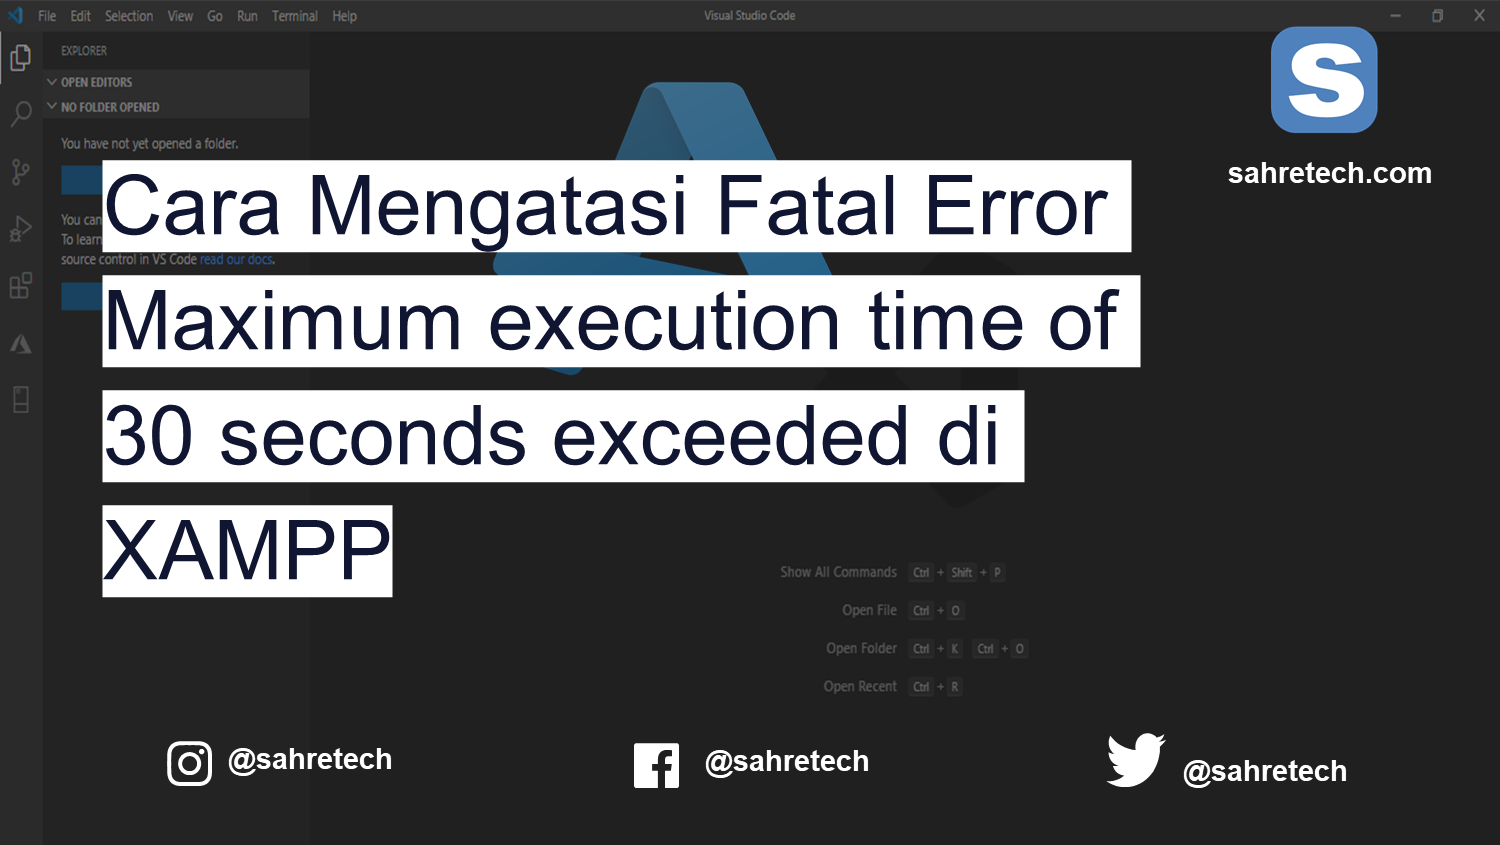 Cara Mengatasi Fatal Error Maximum execution time of 30 seconds exceeded di XAMPP